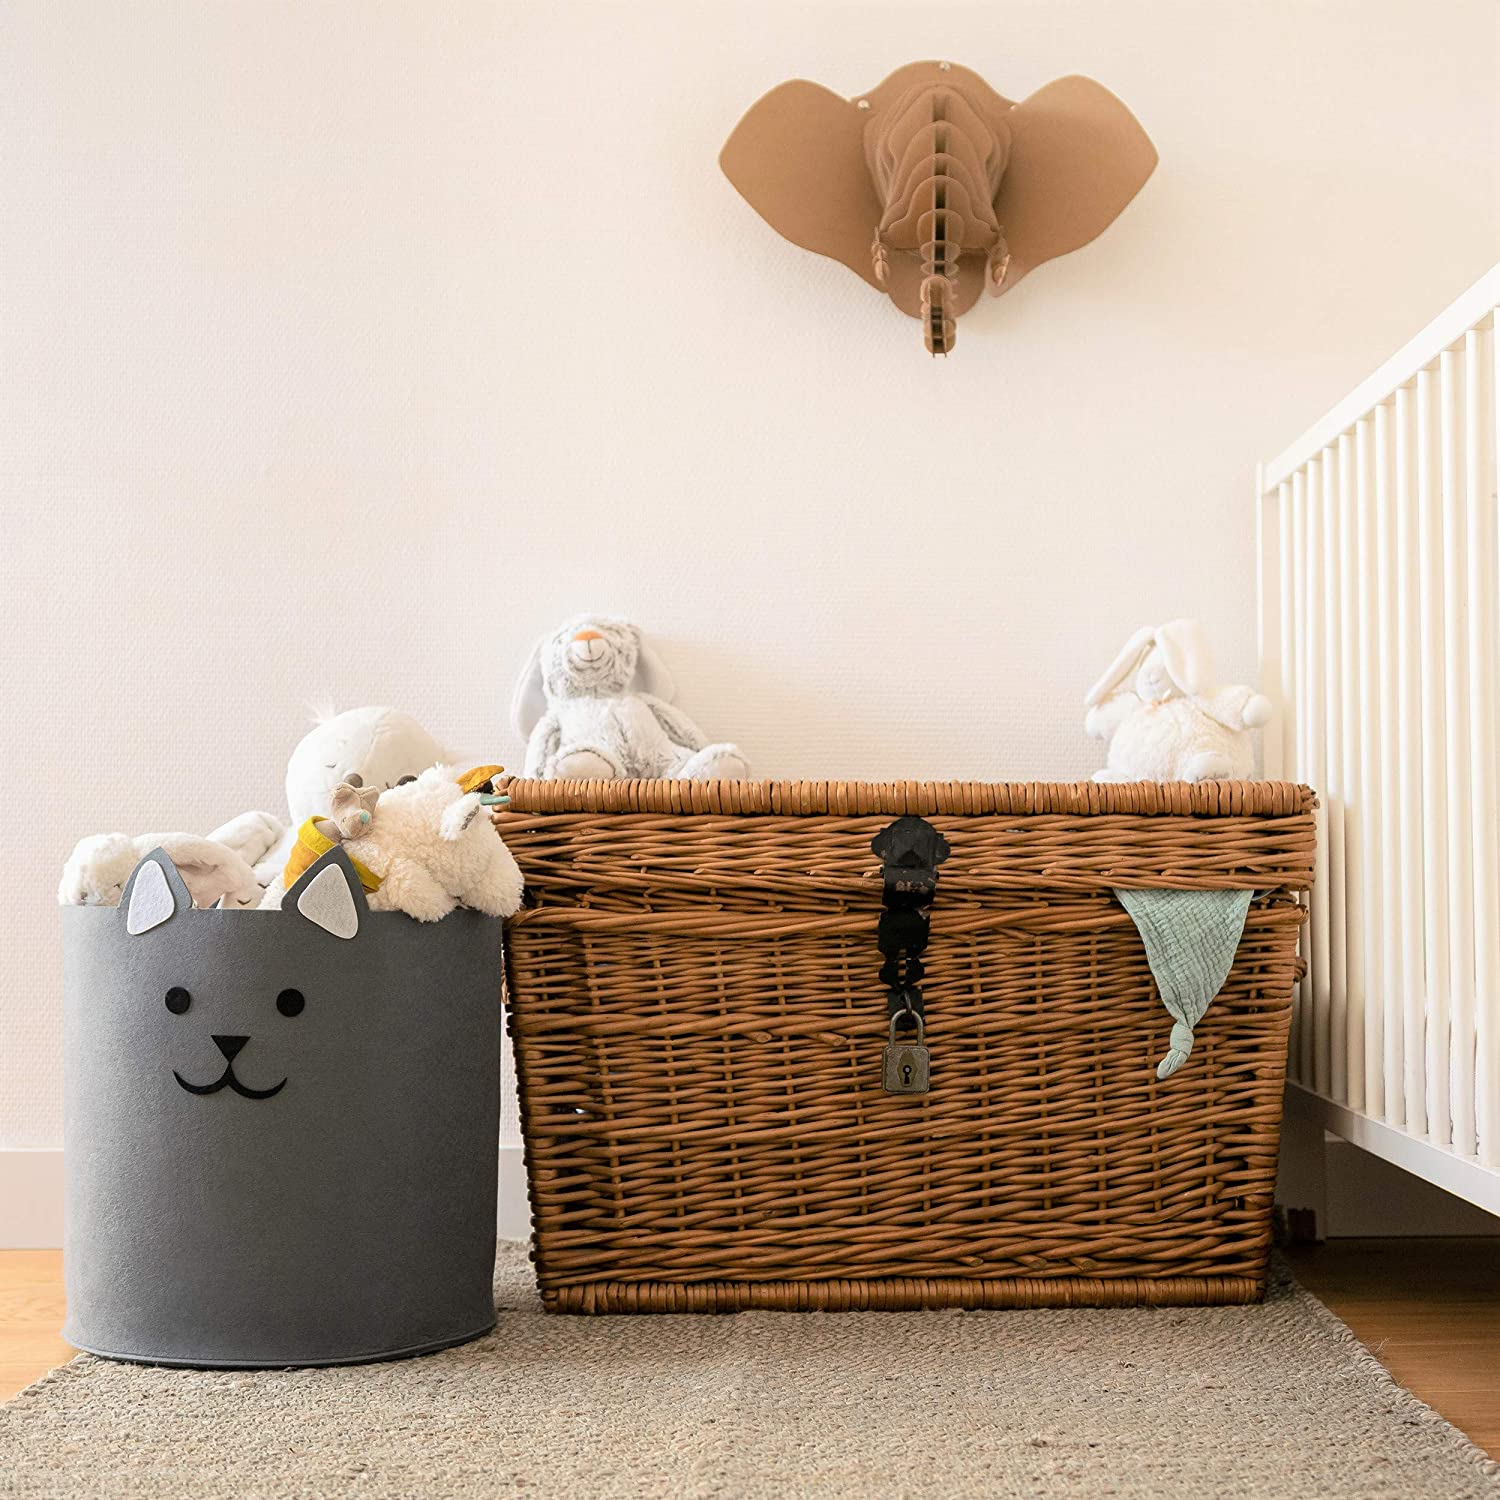 Grey Cat 30L//8 Gallon Toddler /& Baby Washing Basket Made of 100/% Eco-Friendly Large Washable 35x35cm//14x14 Recycled Felt Material Budding Bear Soft Toy Storage for Nursery /& Kids Bedrooms